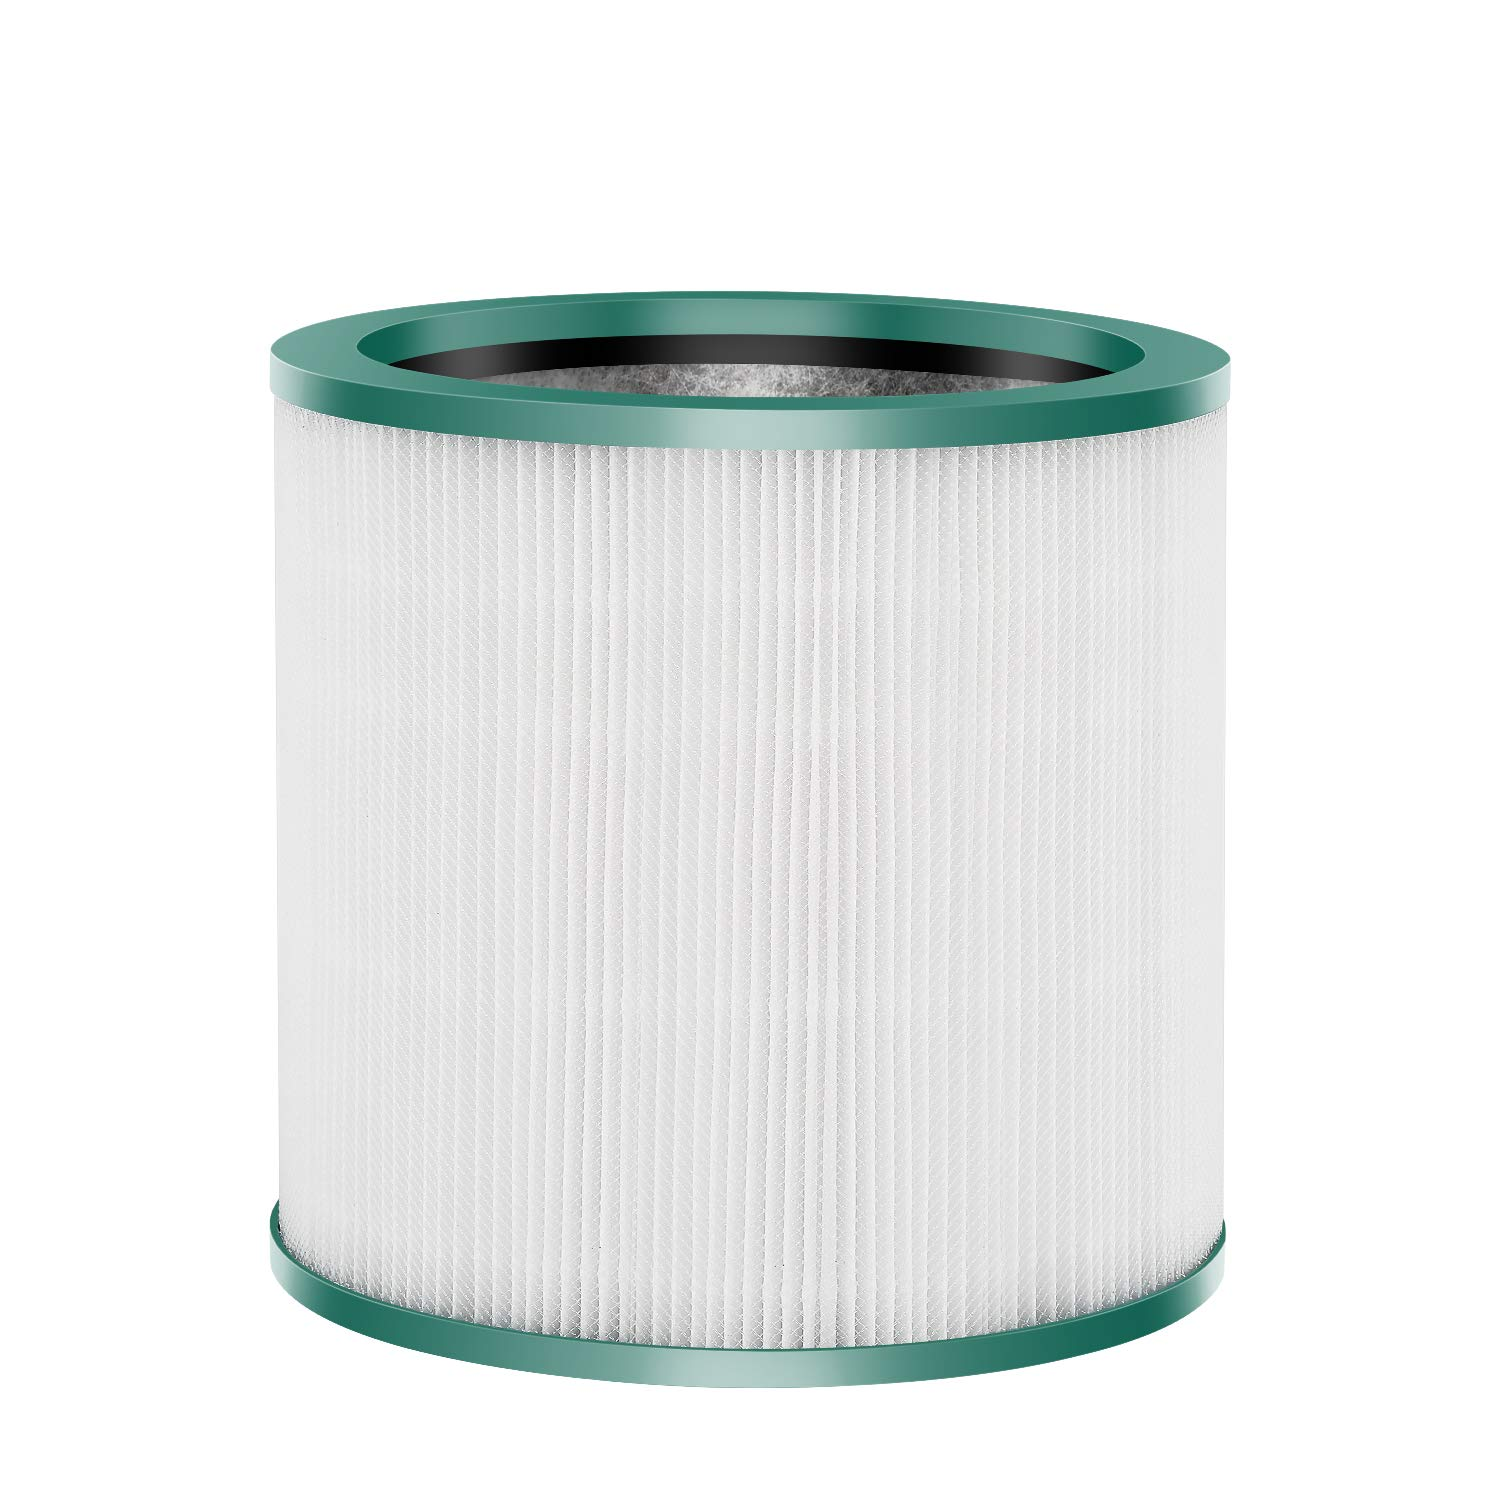 EAS-Replacement Filter Compatible Dyson Pure Cool Link Tp02 Tp03 Tower Purifier